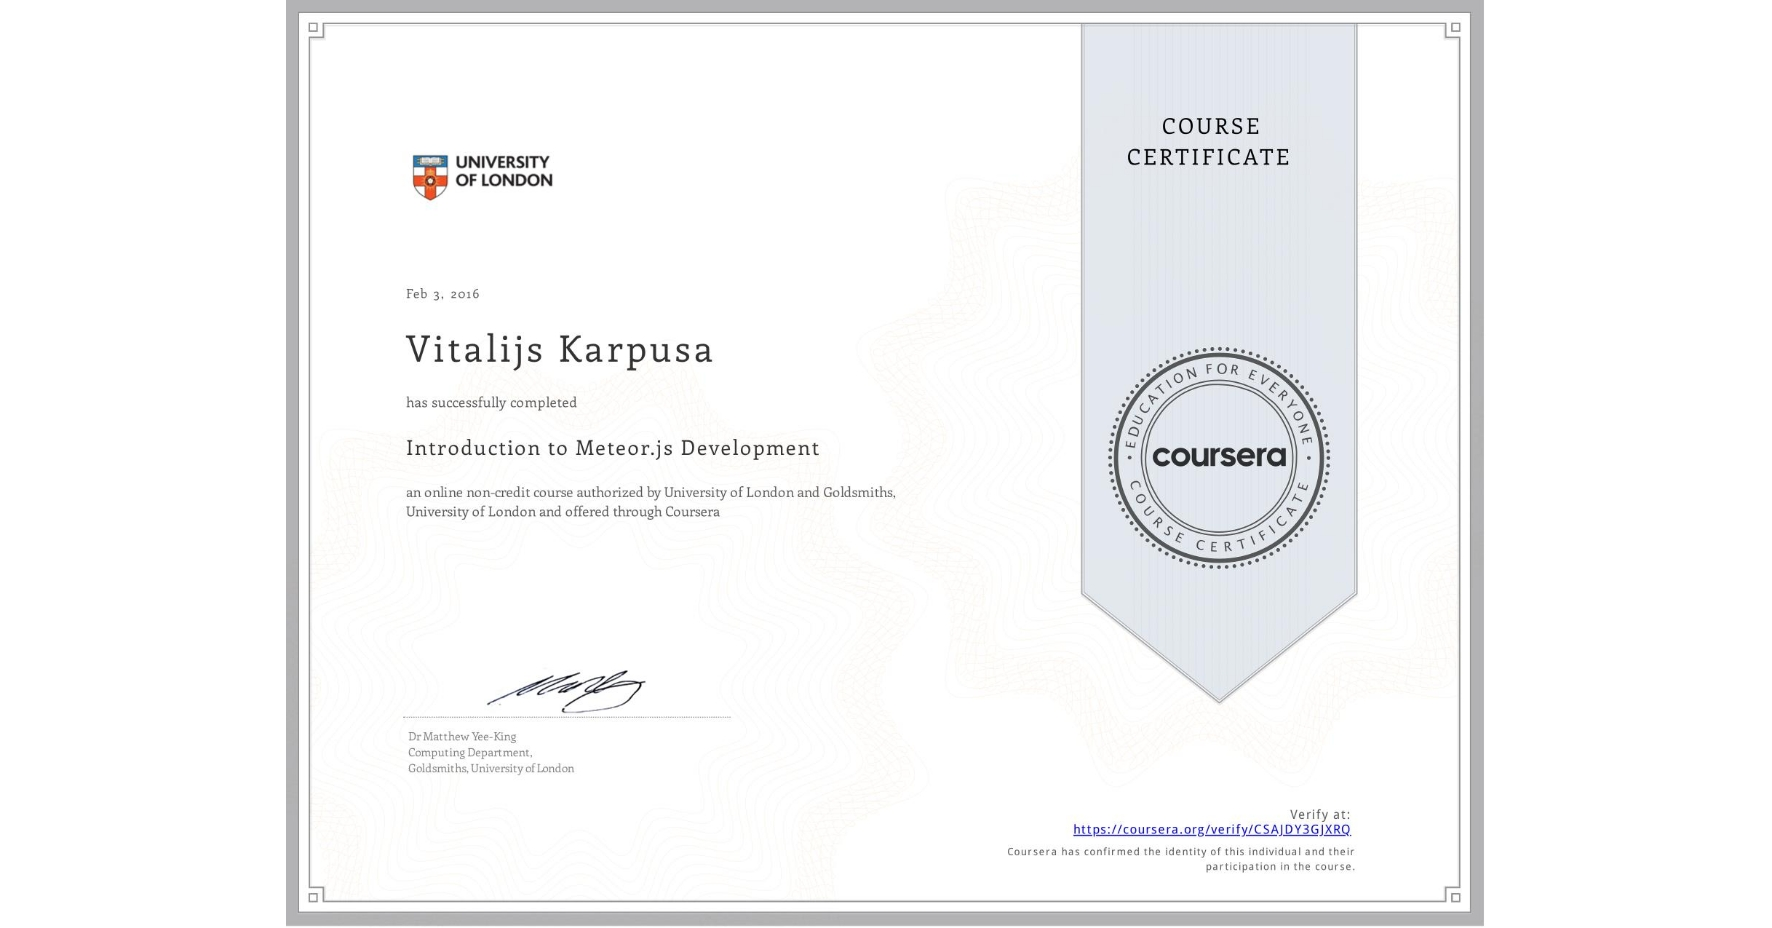 View certificate for Vitalijs Karpusa, Introduction to Meteor.js Development  , an online non-credit course authorized by University of London & Goldsmiths, University of London and offered through Coursera